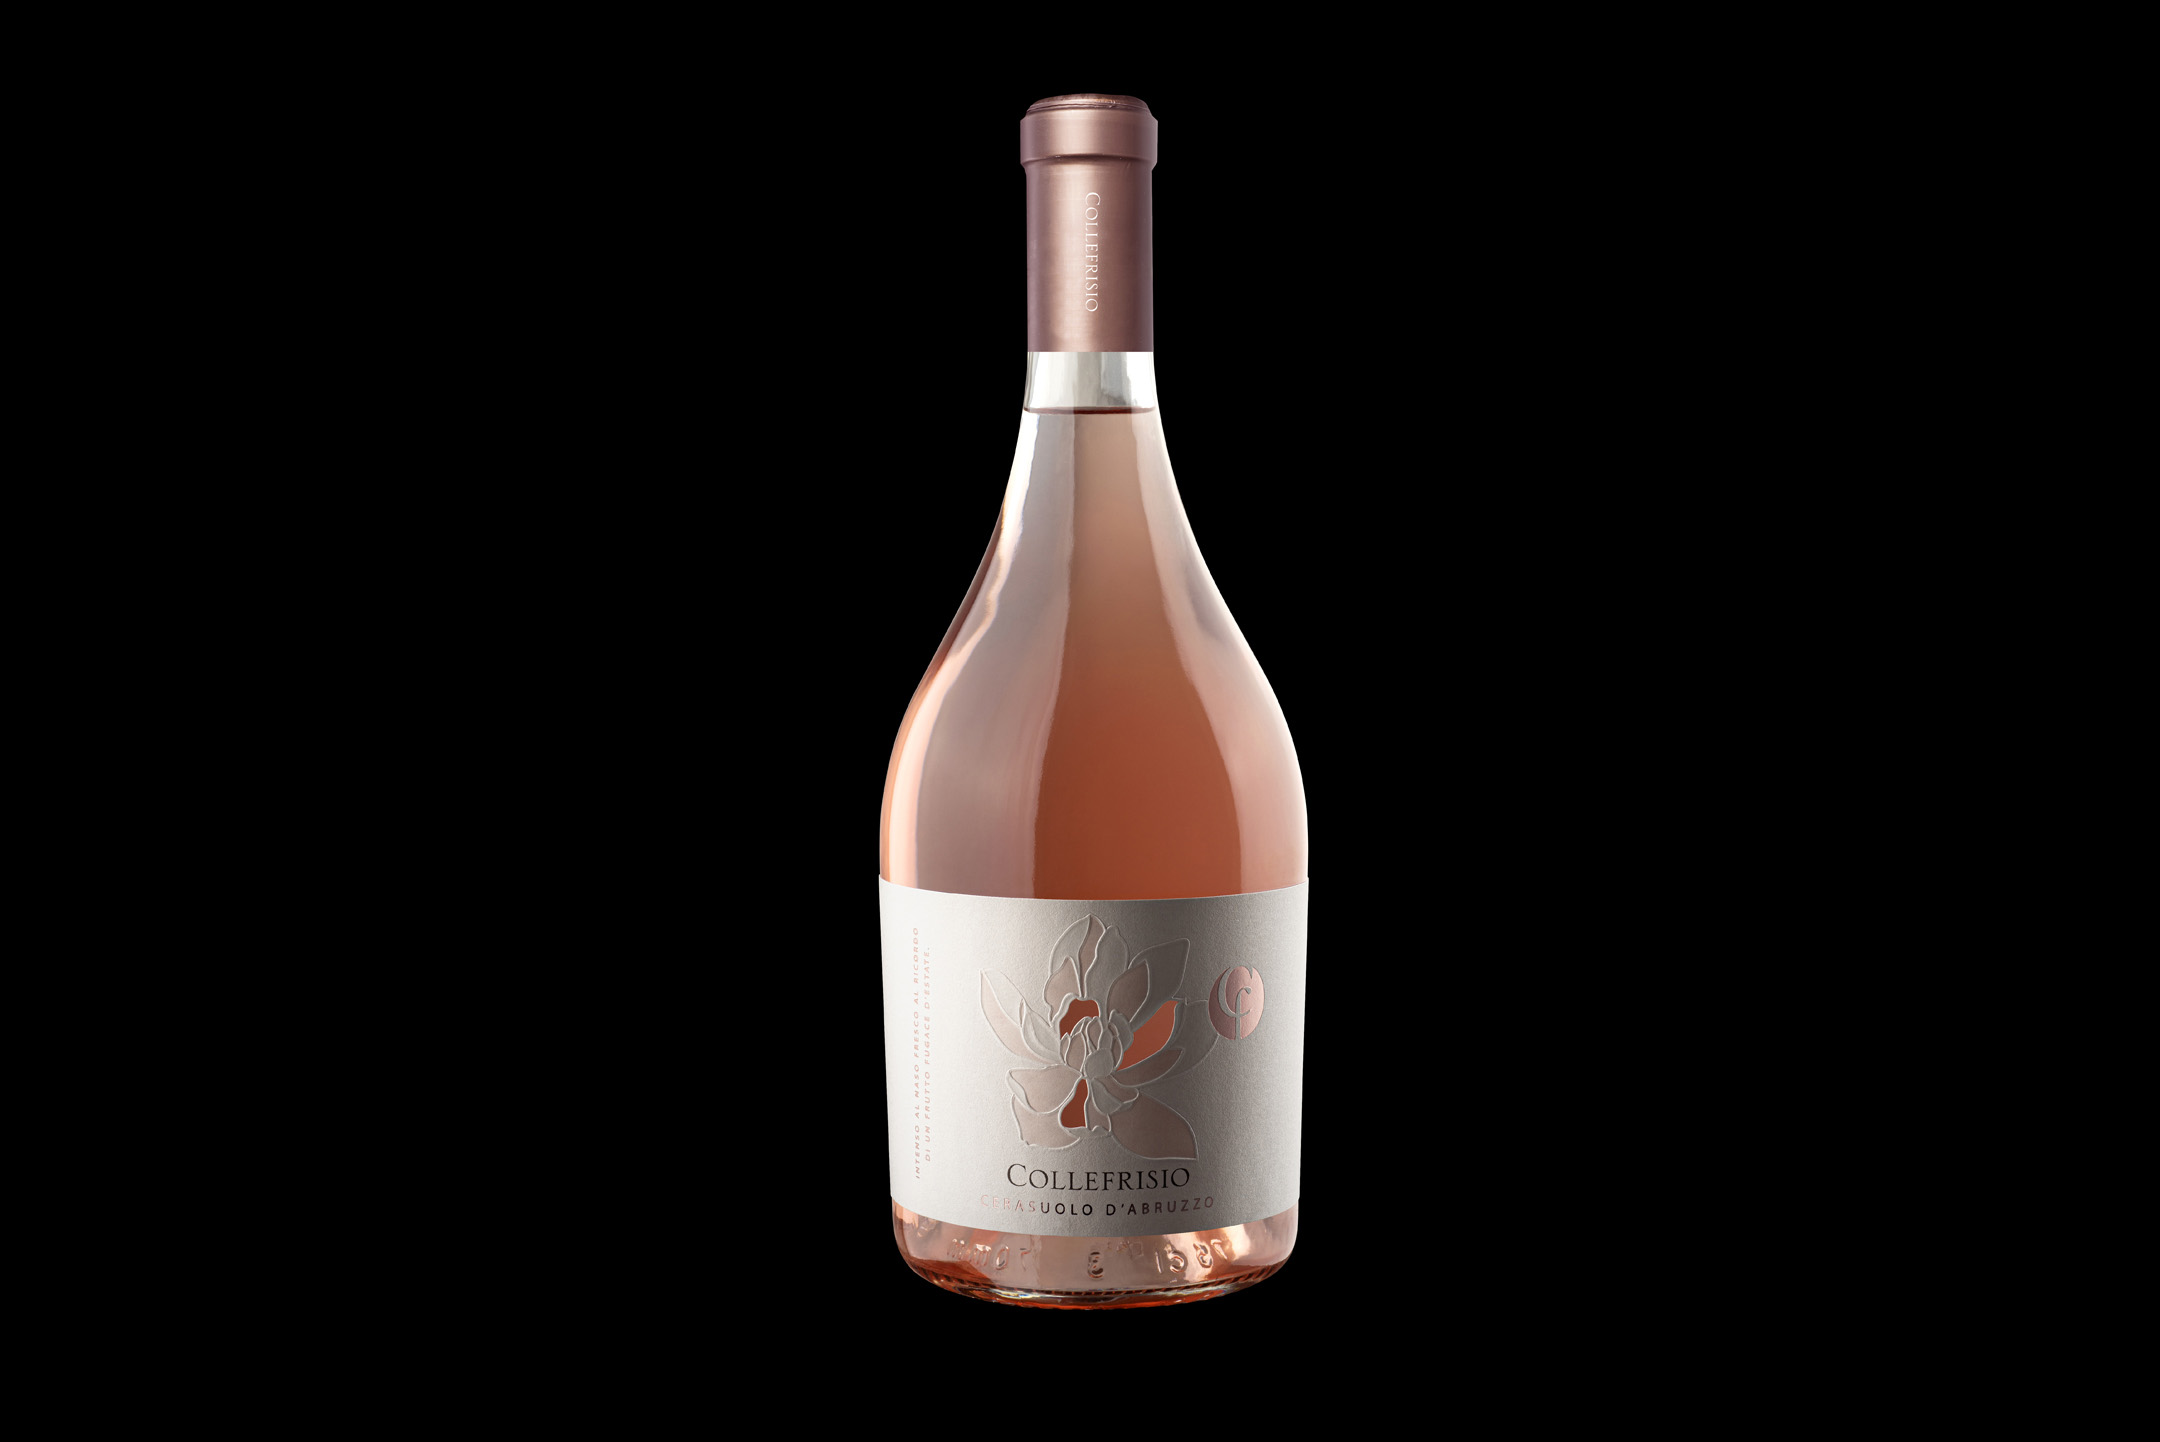 collefrisio-cerasuolo-abruzzo-2020-awards-packaging-spaziodipaolo-label-wine-italy-rose-winedesign-vinitaly-1